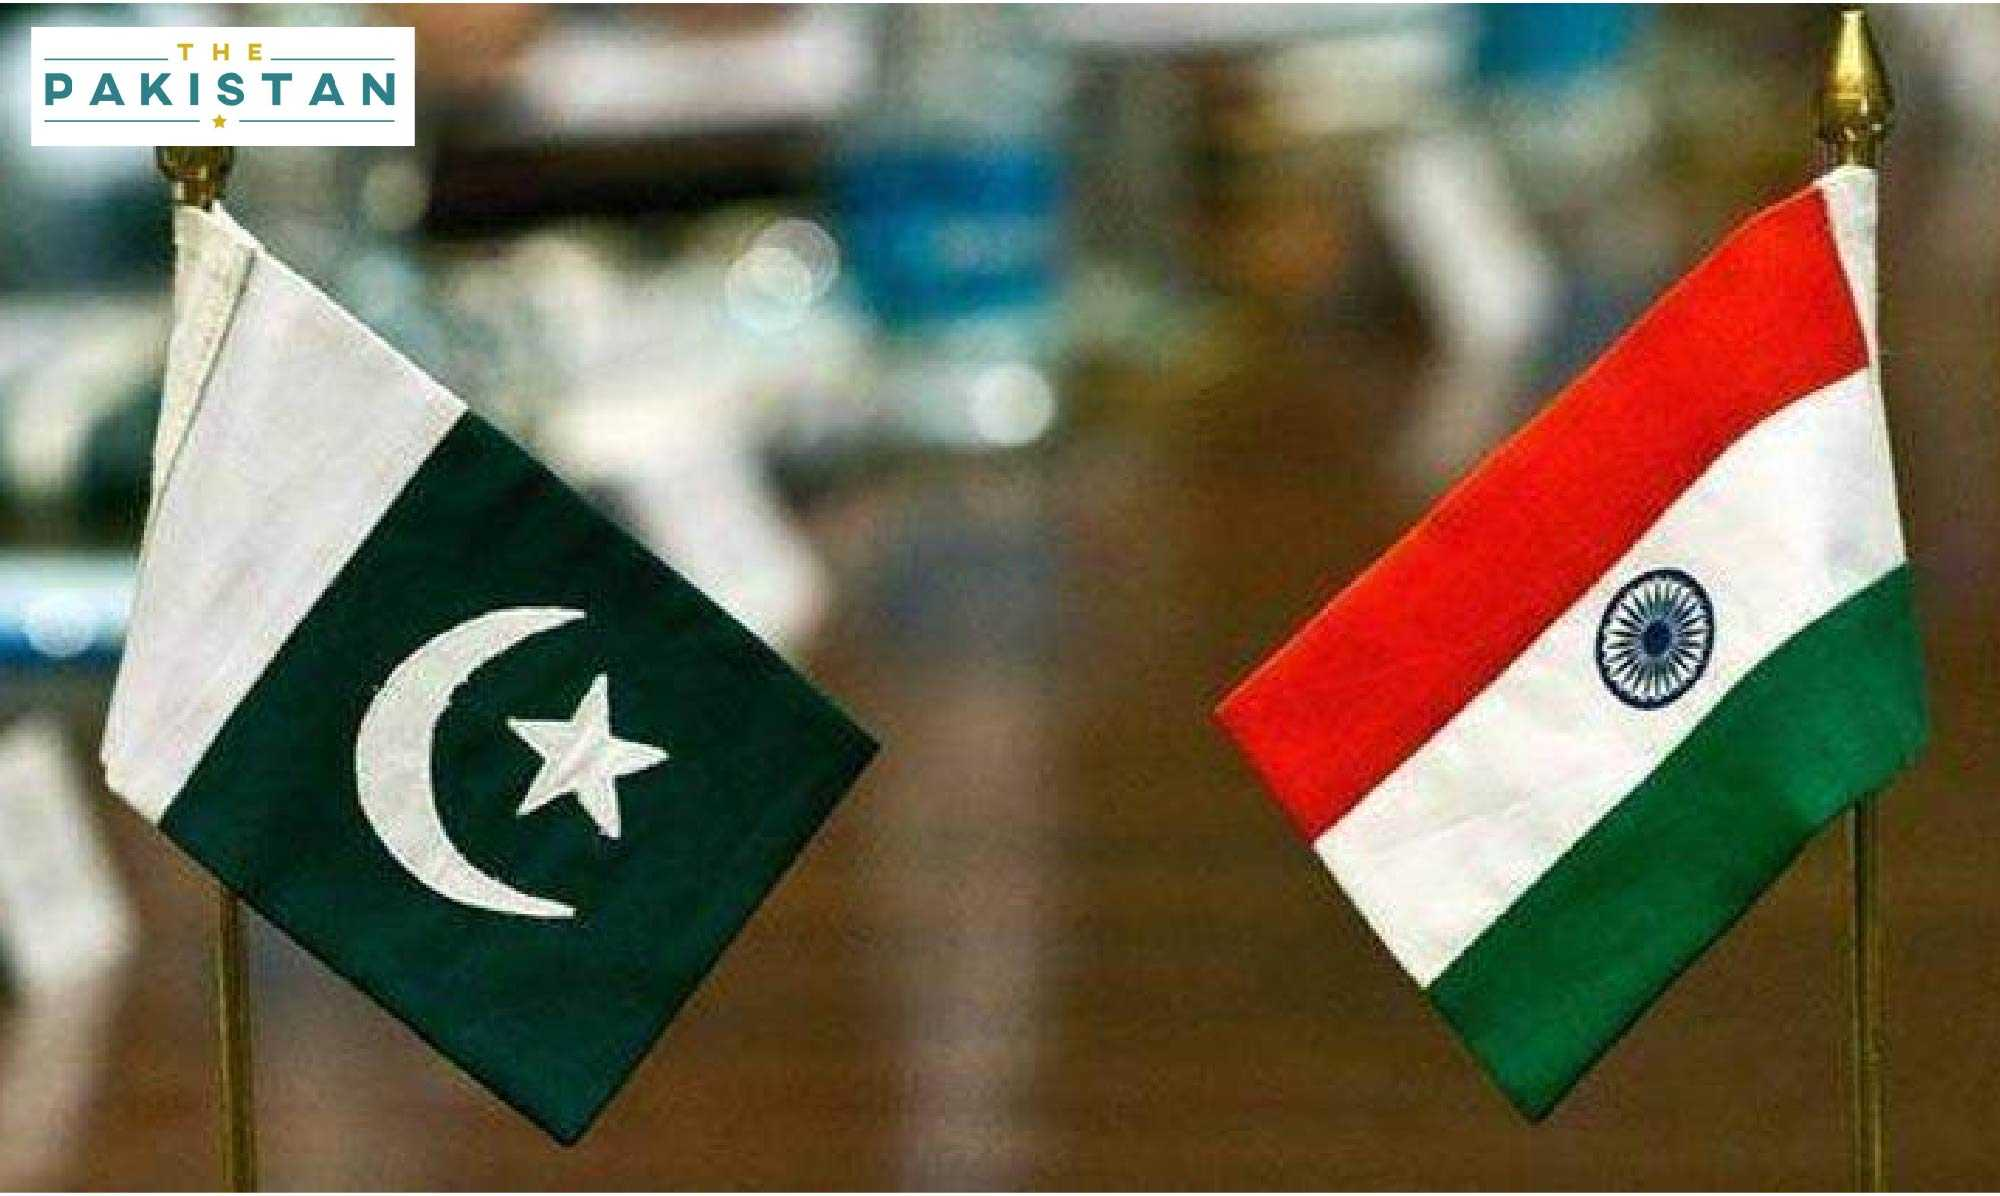 India wants to talk to Pakistan, says Moeed Yousuf